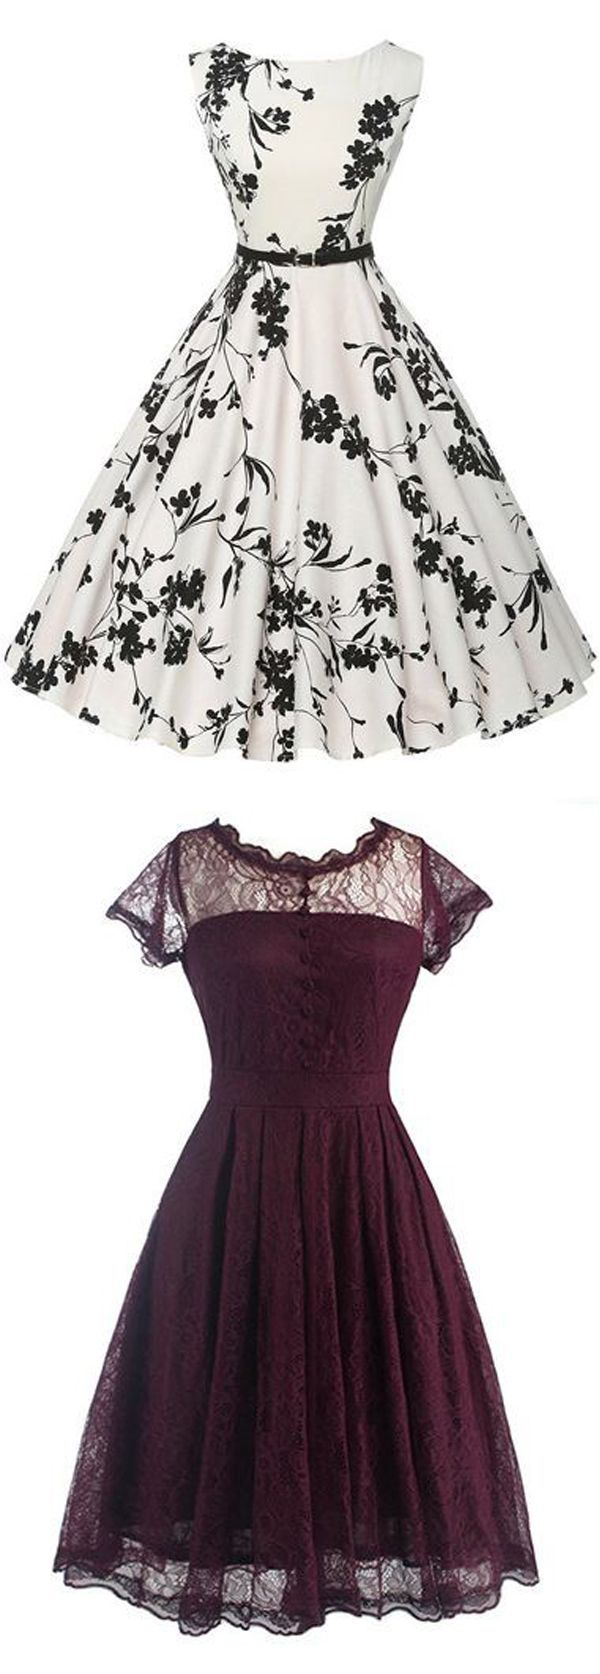 Vintage dresses retro dresses s dresses s dresses african